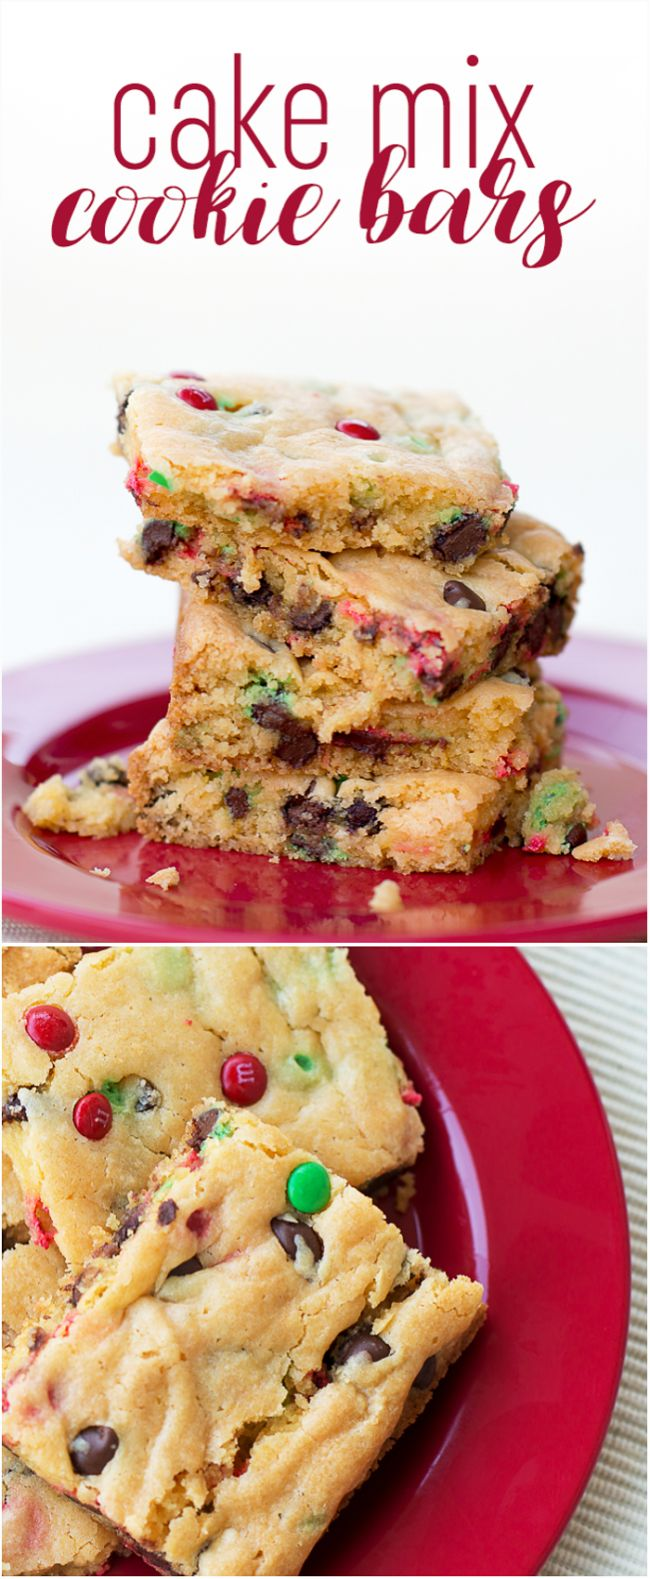 Cake Mix Cookie Bars Recipe - I've scoured Pinterest for the best cake mix cookie bars recipe and this is THE ONE folks, be sure to repin it and try it to see what I mean! Perfect for Christmas parties!